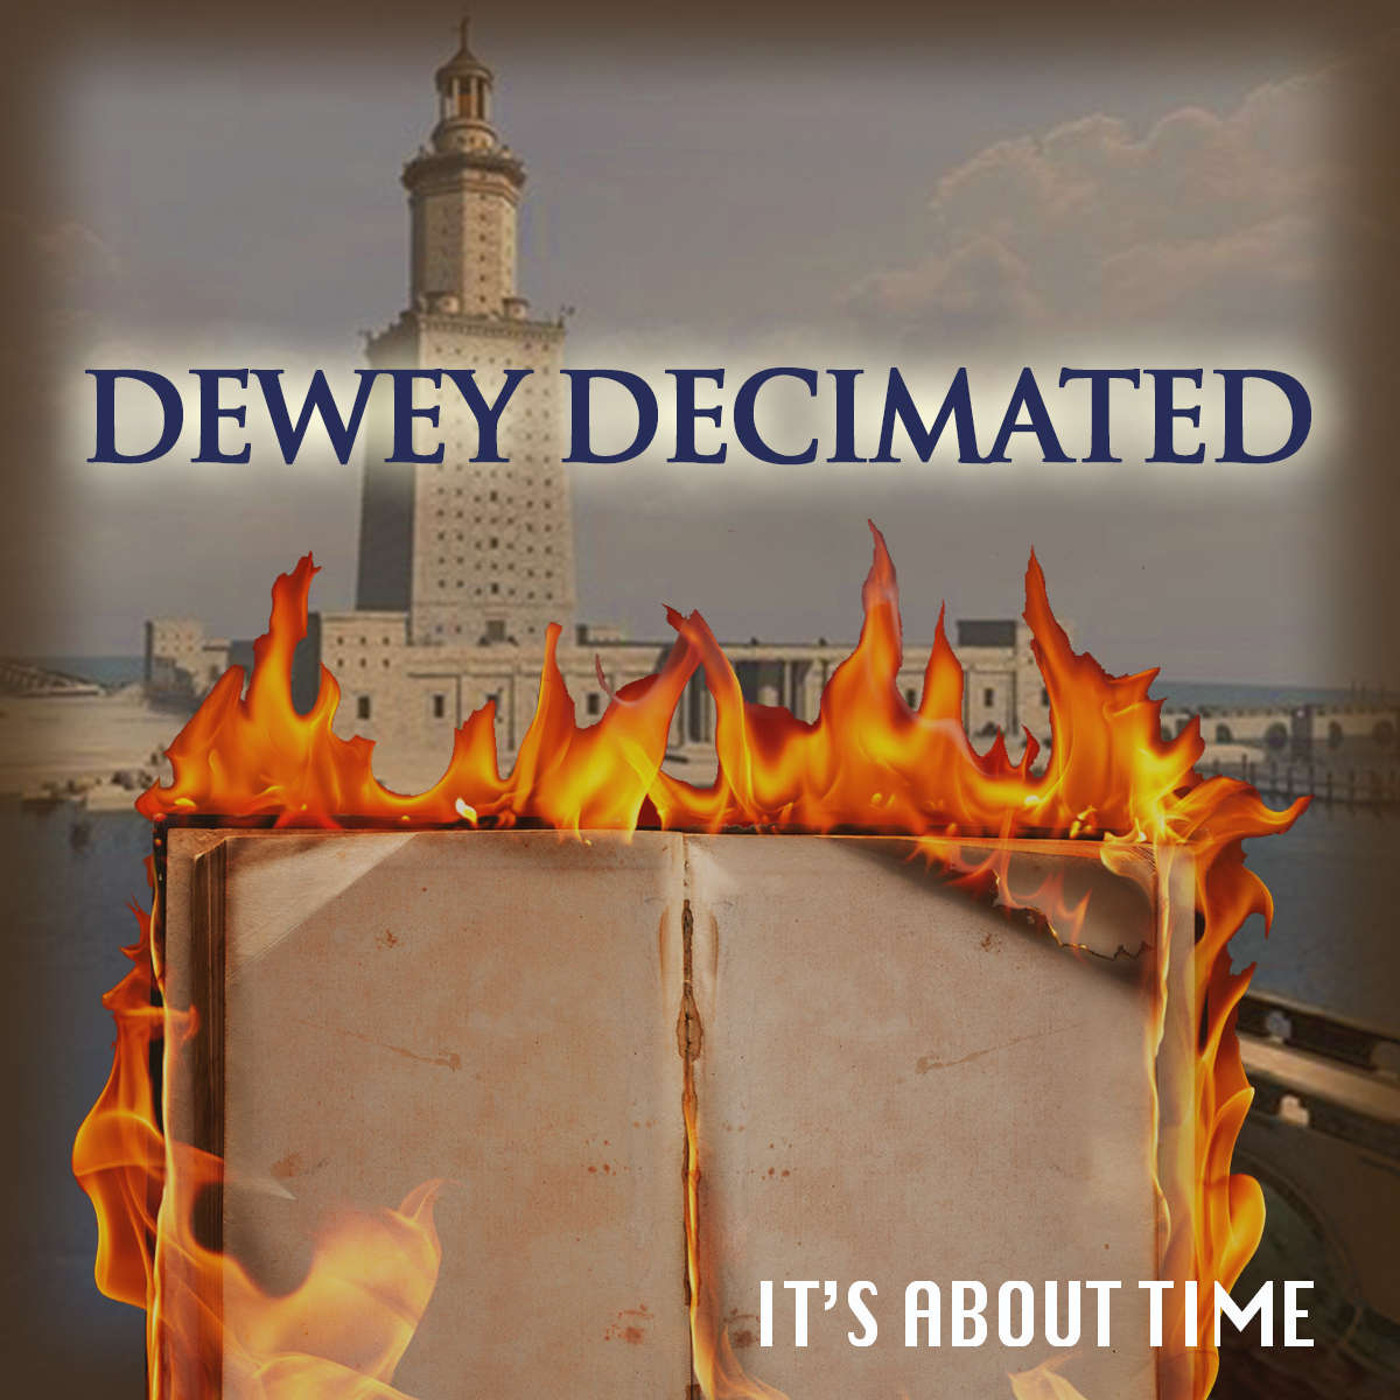 S01E04-Dewey Decimated - A time travel adventure in the great Library of Alexandria